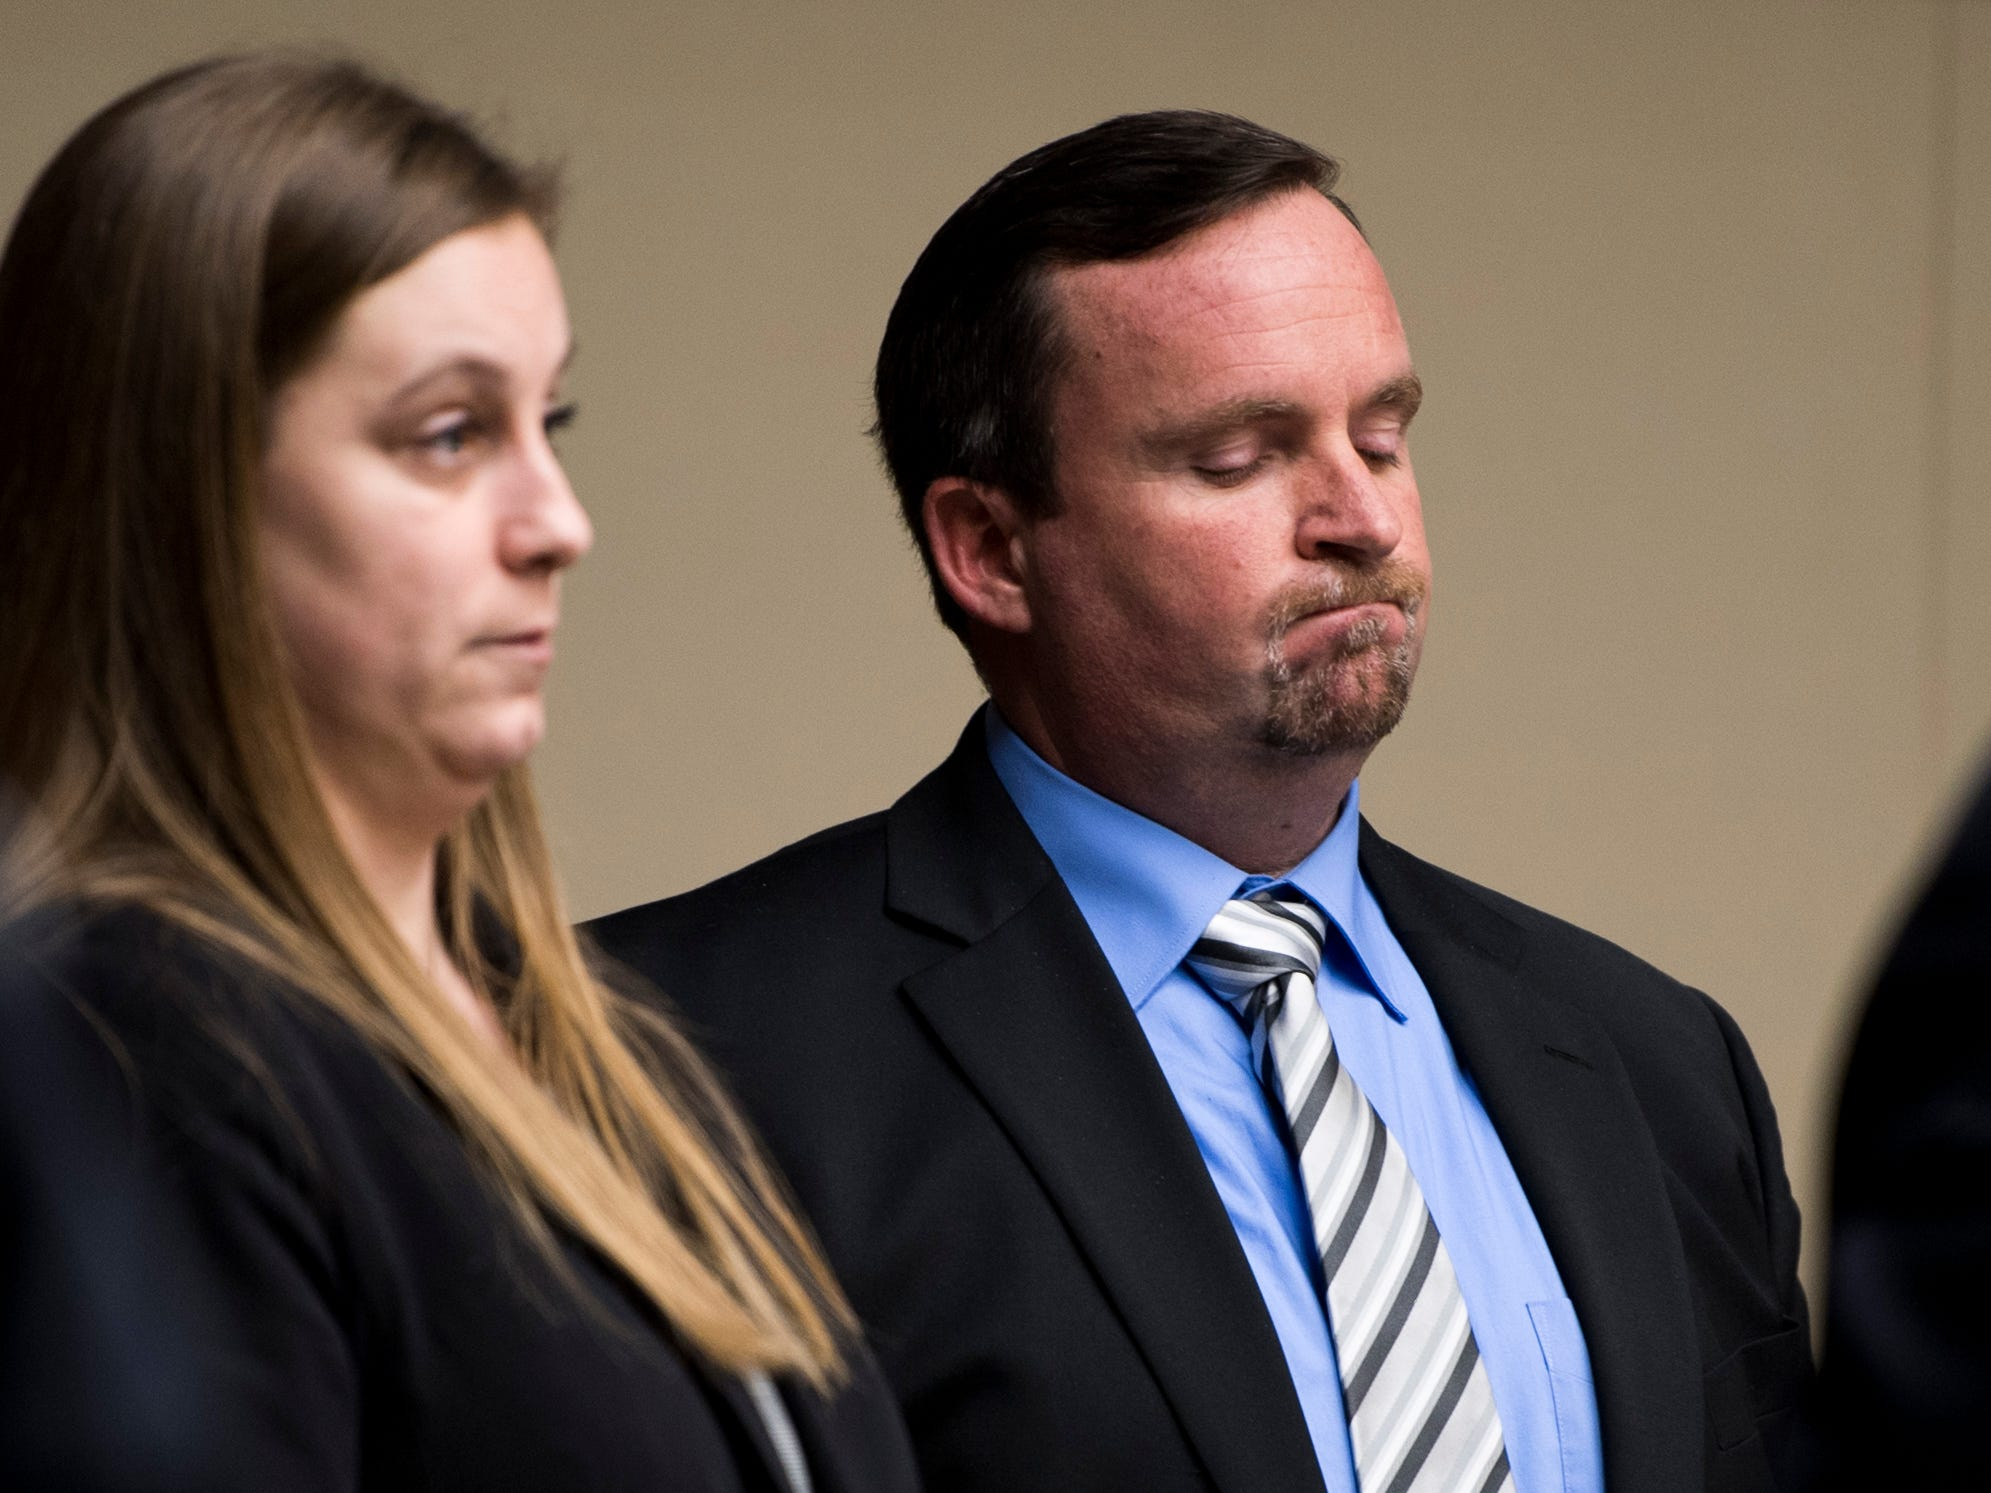 David Lynn Richards, right, reacts as the jury reads the verdict in Knox County Criminal Court on Monday, February 11, 2019. The jury found Richards guilty of nine felony counts, including rape, incest and sexual battery.